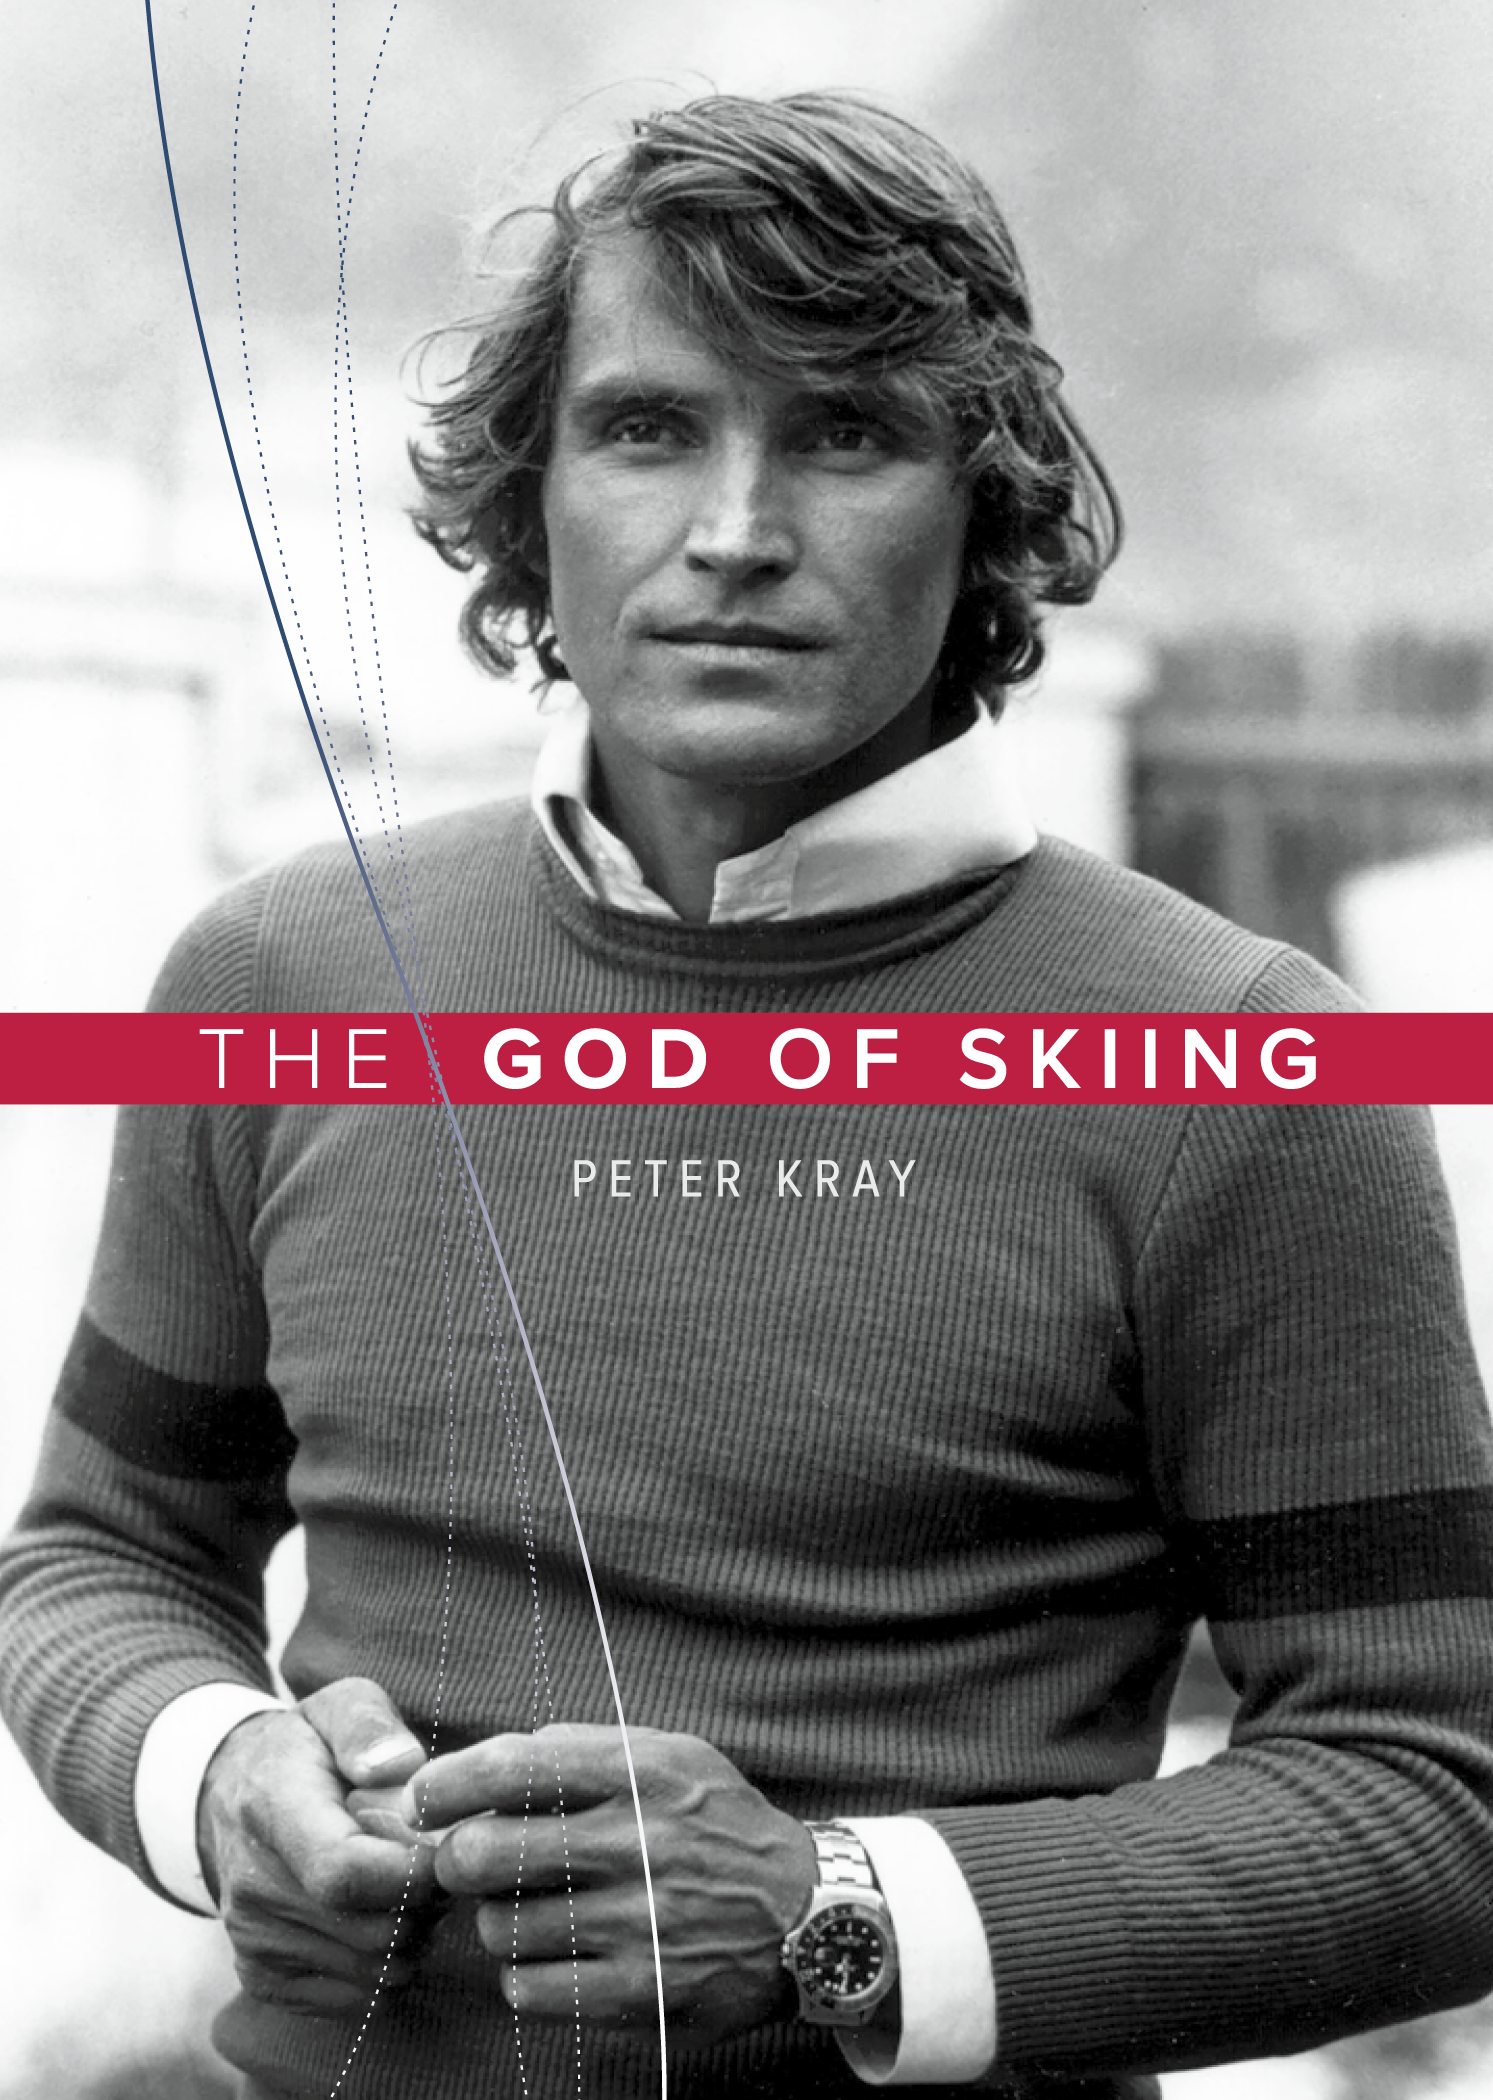 Peter Kray's new book published in the fall of 2014. PHOTO: Courtesy of Peter Kray